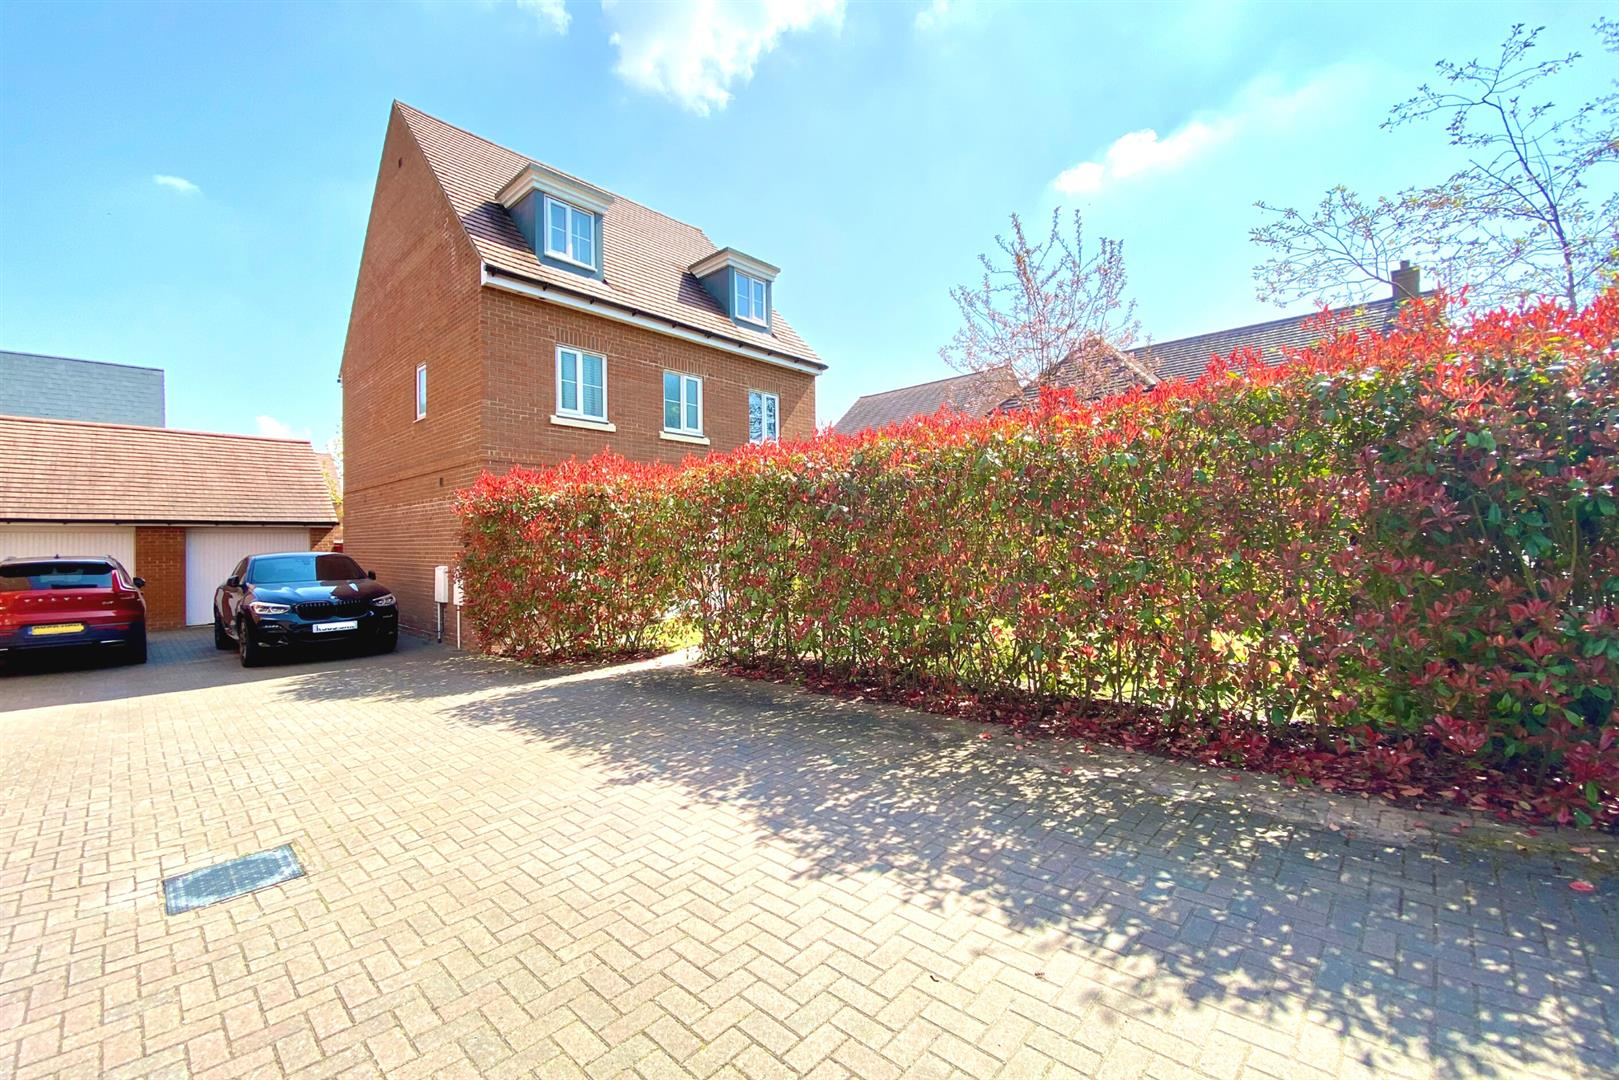 5 bed detached for sale in Three Mile Cross  - Property Image 11